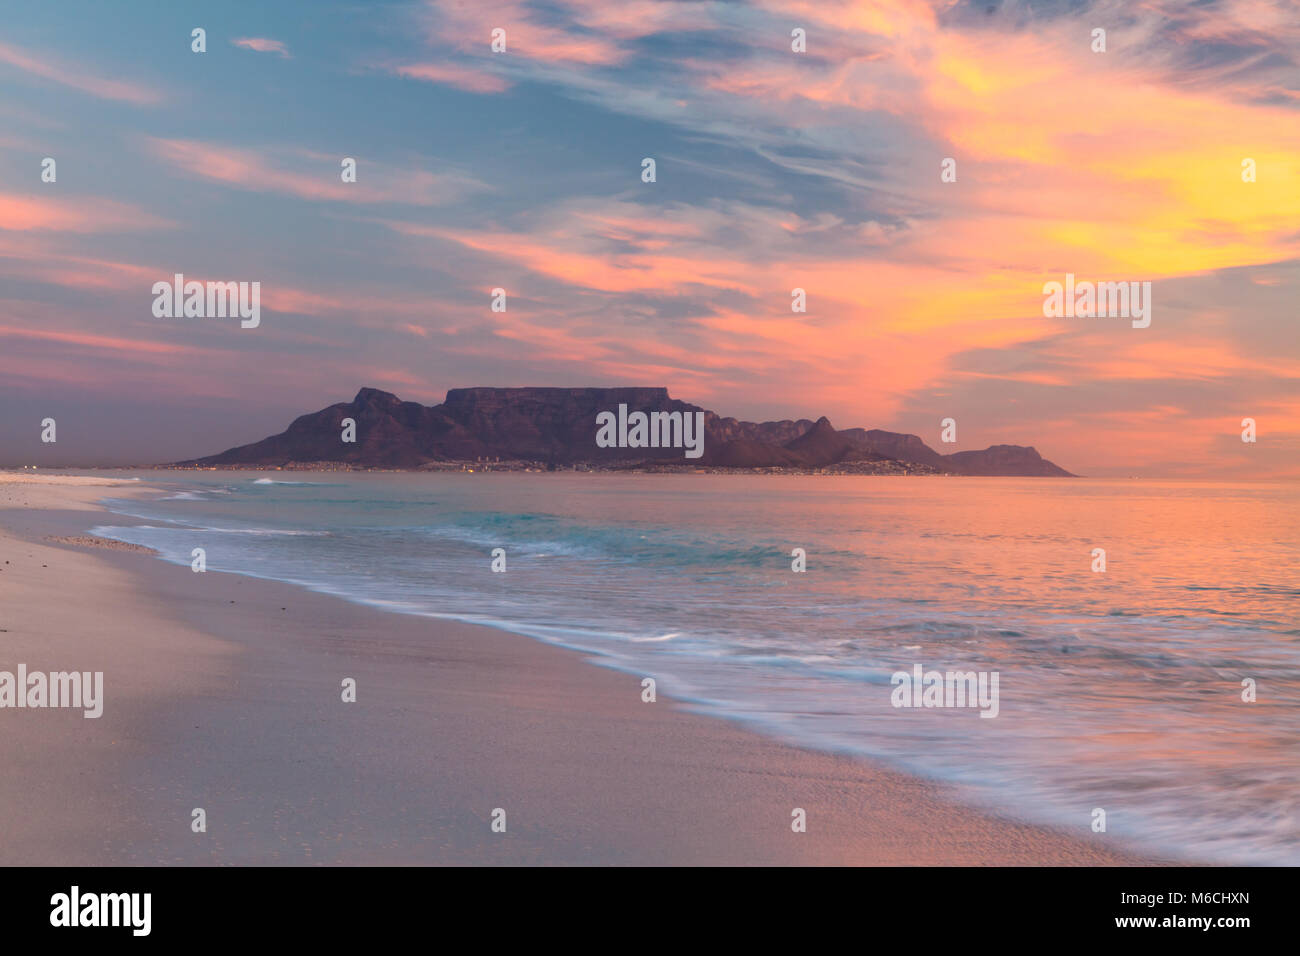 scenic view of table mountain cape town south africa from blouberg at sunset - Stock Image